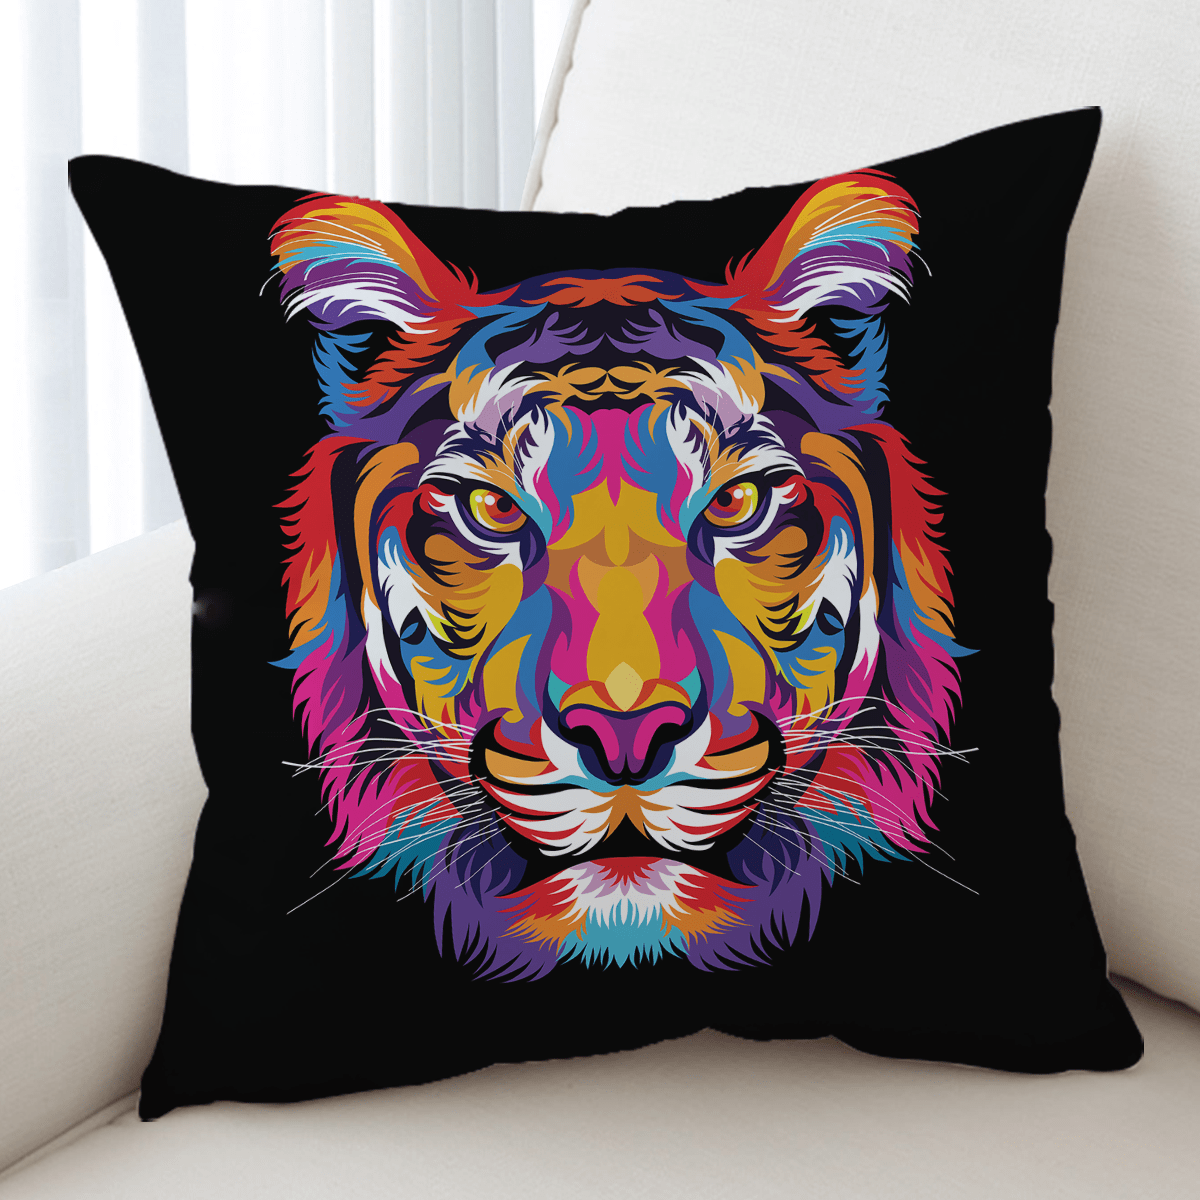 Bright Tiger Cushion Cover-Bright Tiger-Little Squiffy